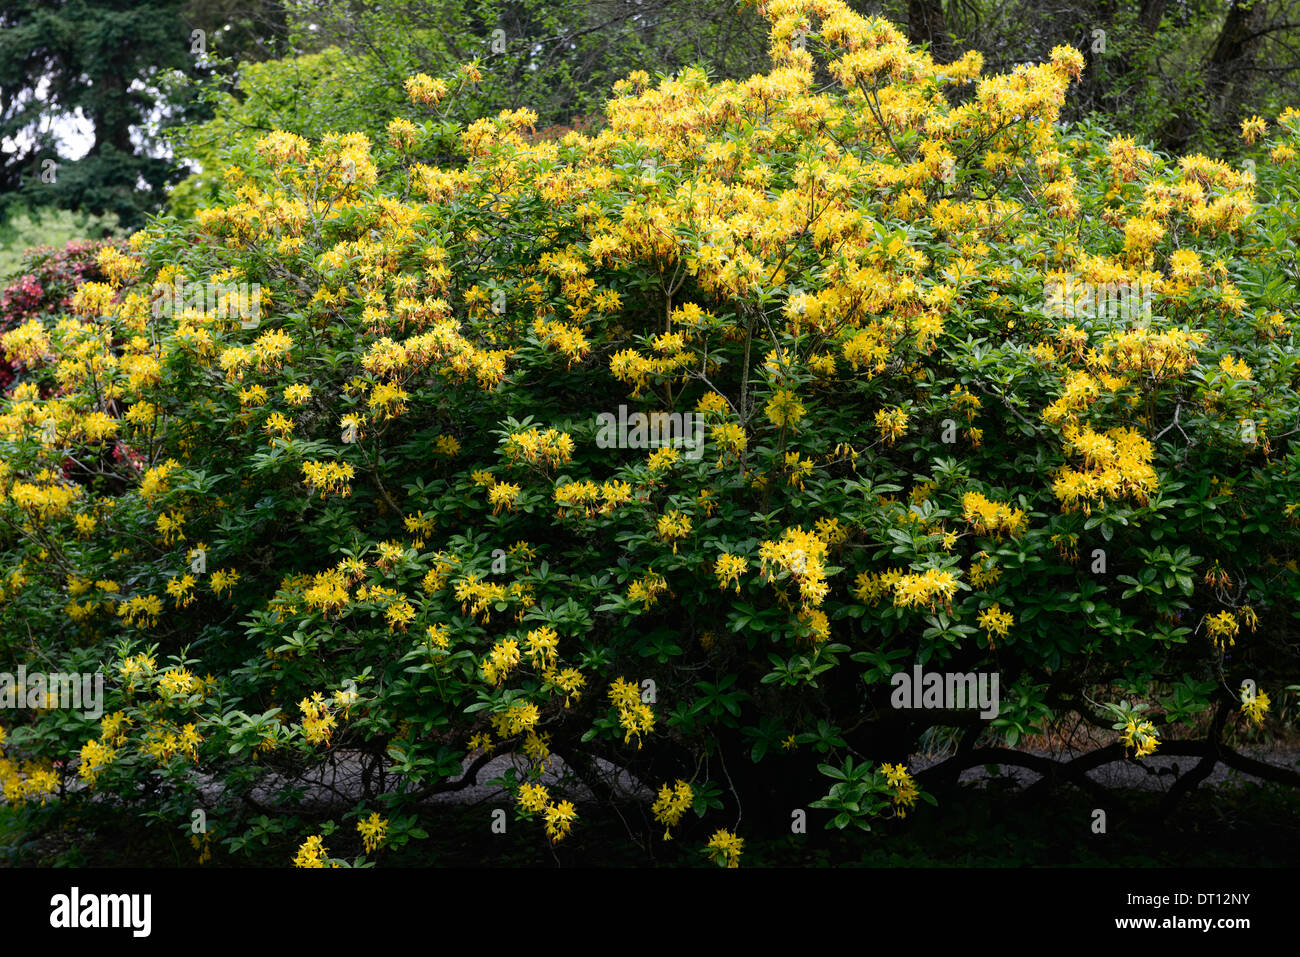 rhododendron luteum yellow azalea pontica rhododendrons shrubs yellow flowers flowering ericaceous tree shrub Stock Photo